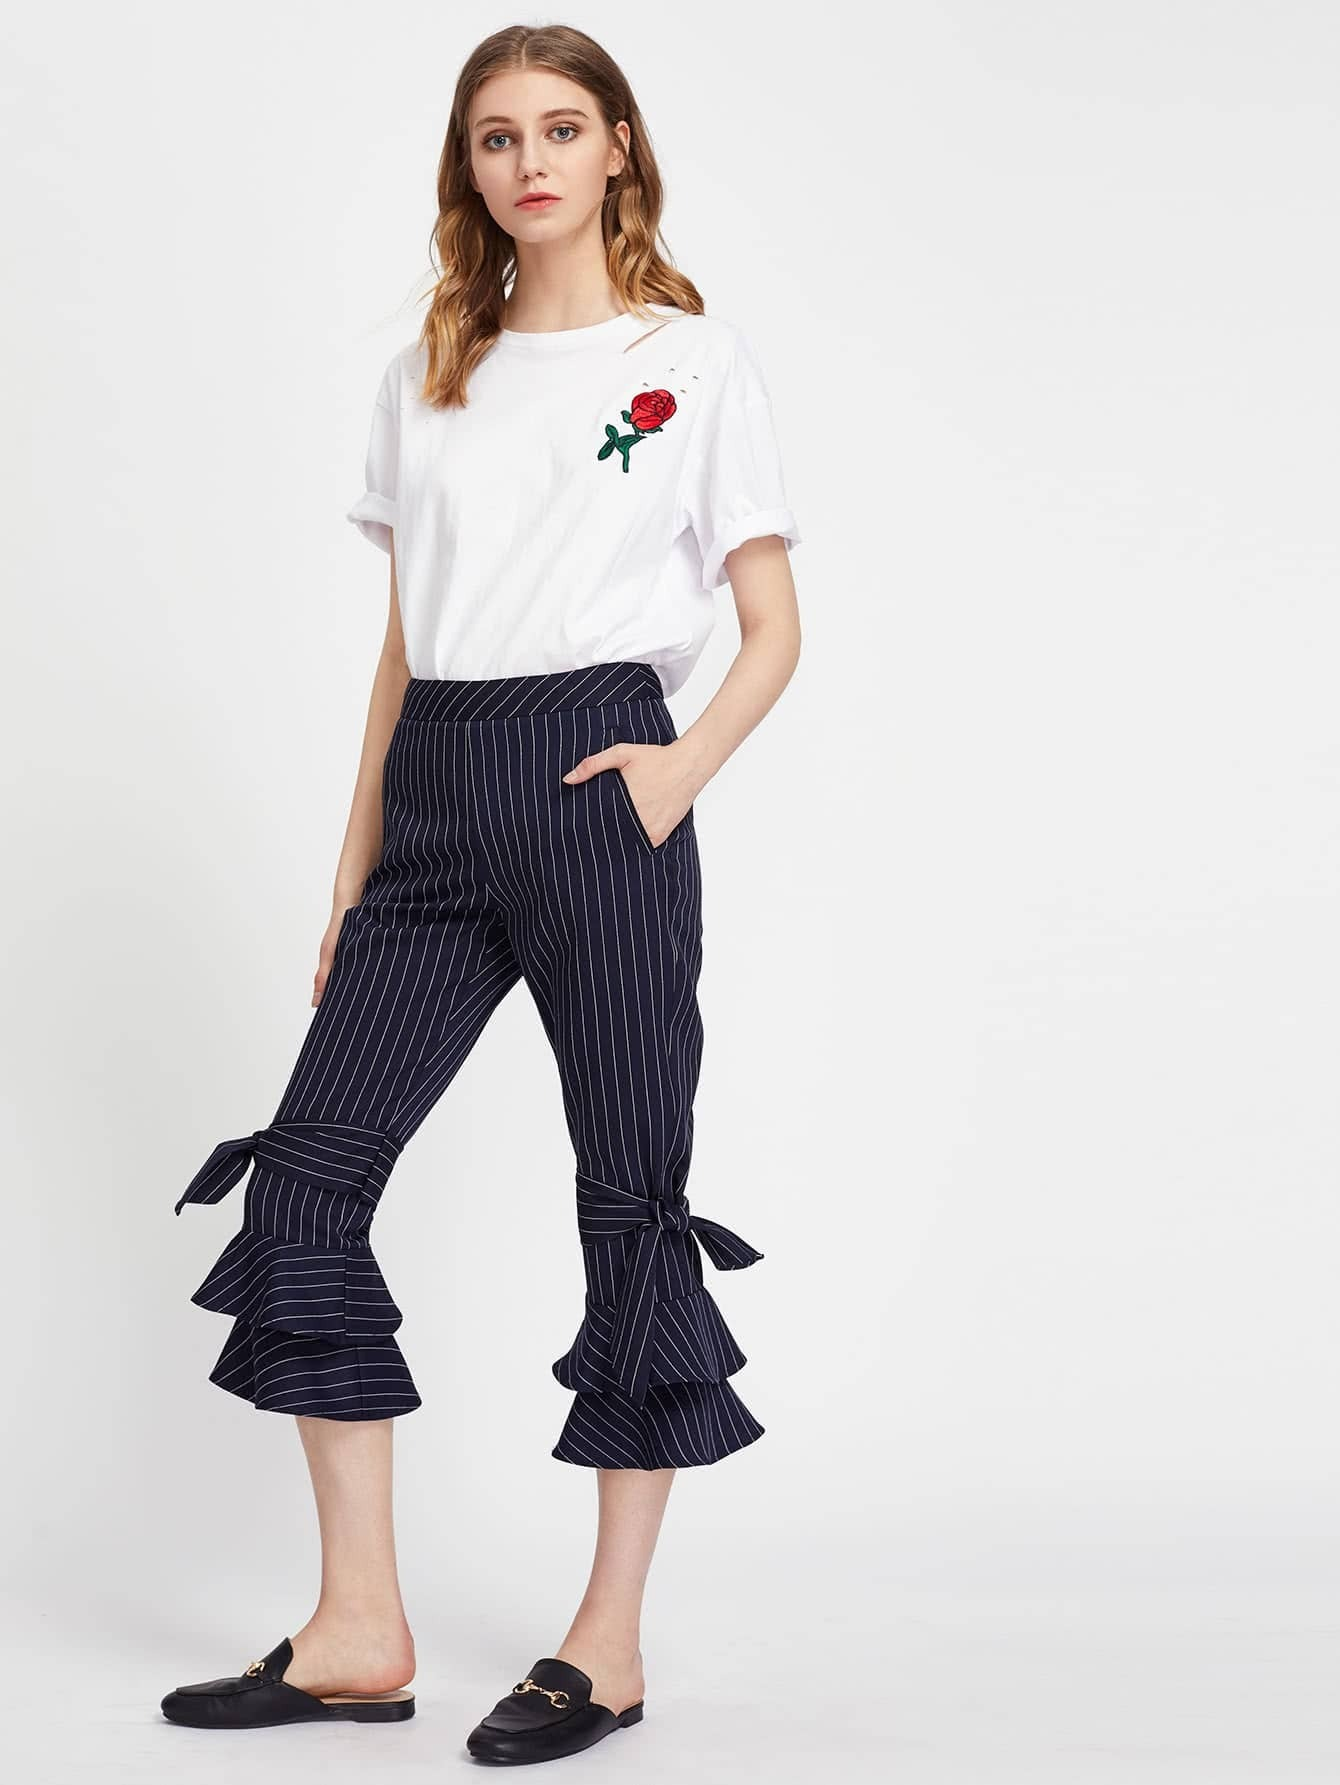 Belted Detail Pinstripe Layered Flare Pants